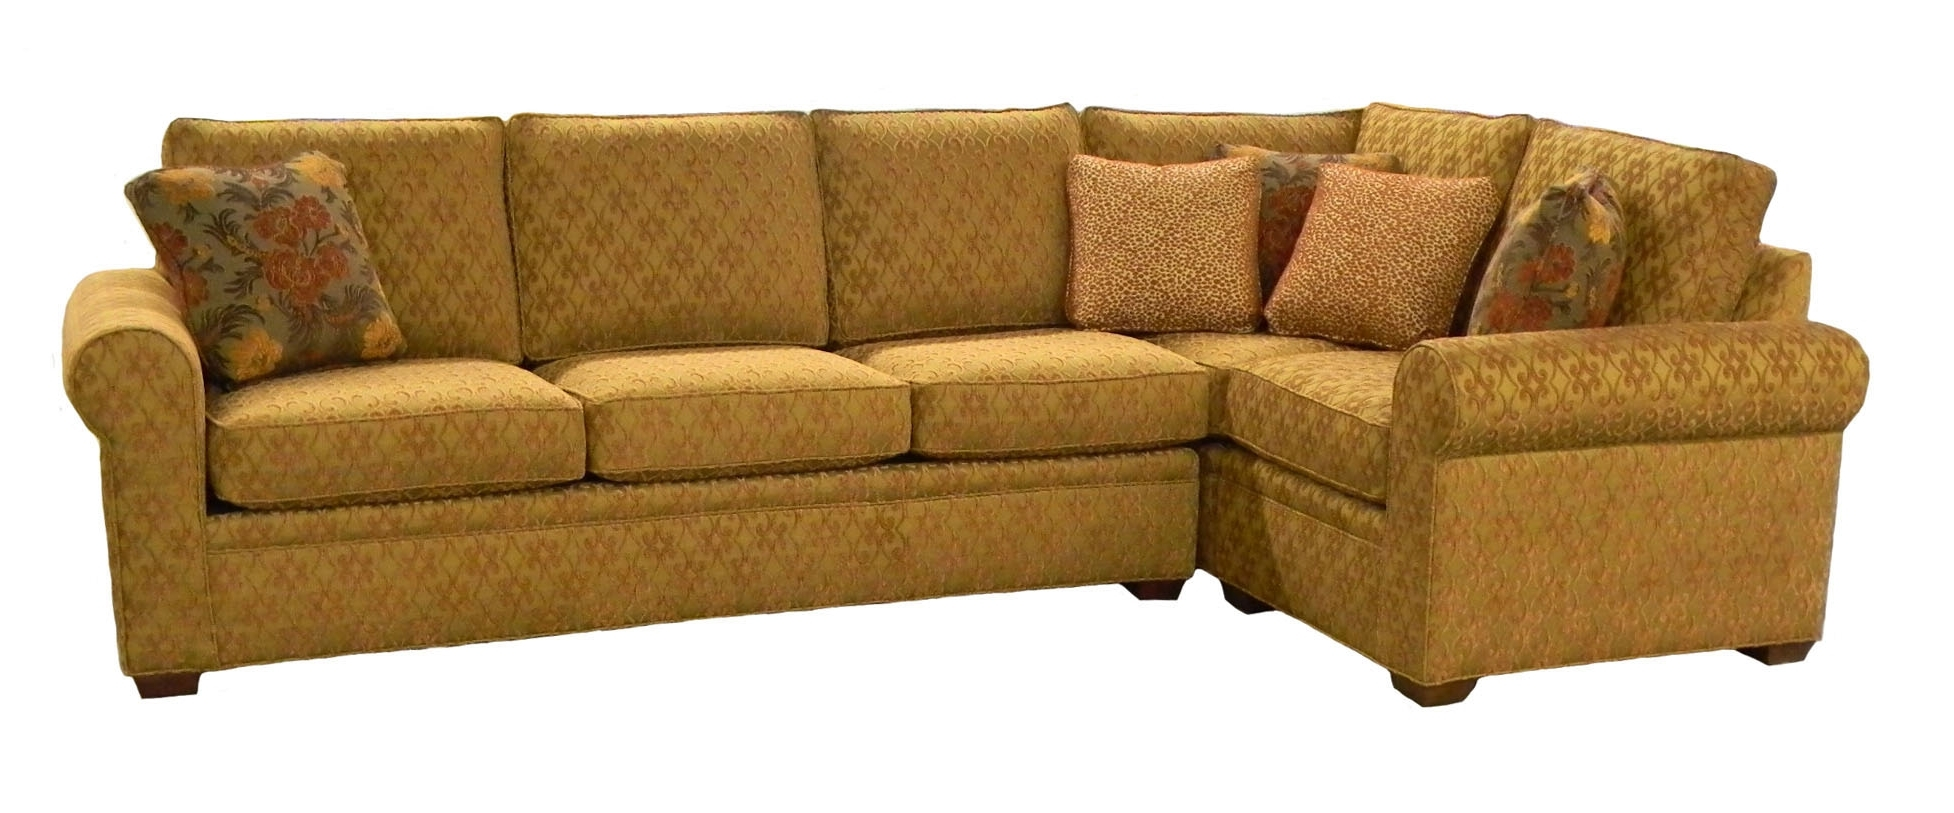 Preferred Made In North Carolina Sectional Sofas Regarding Photos Examples Custom Sectional Sofas Carolina Chair Furniture (View 13 of 20)